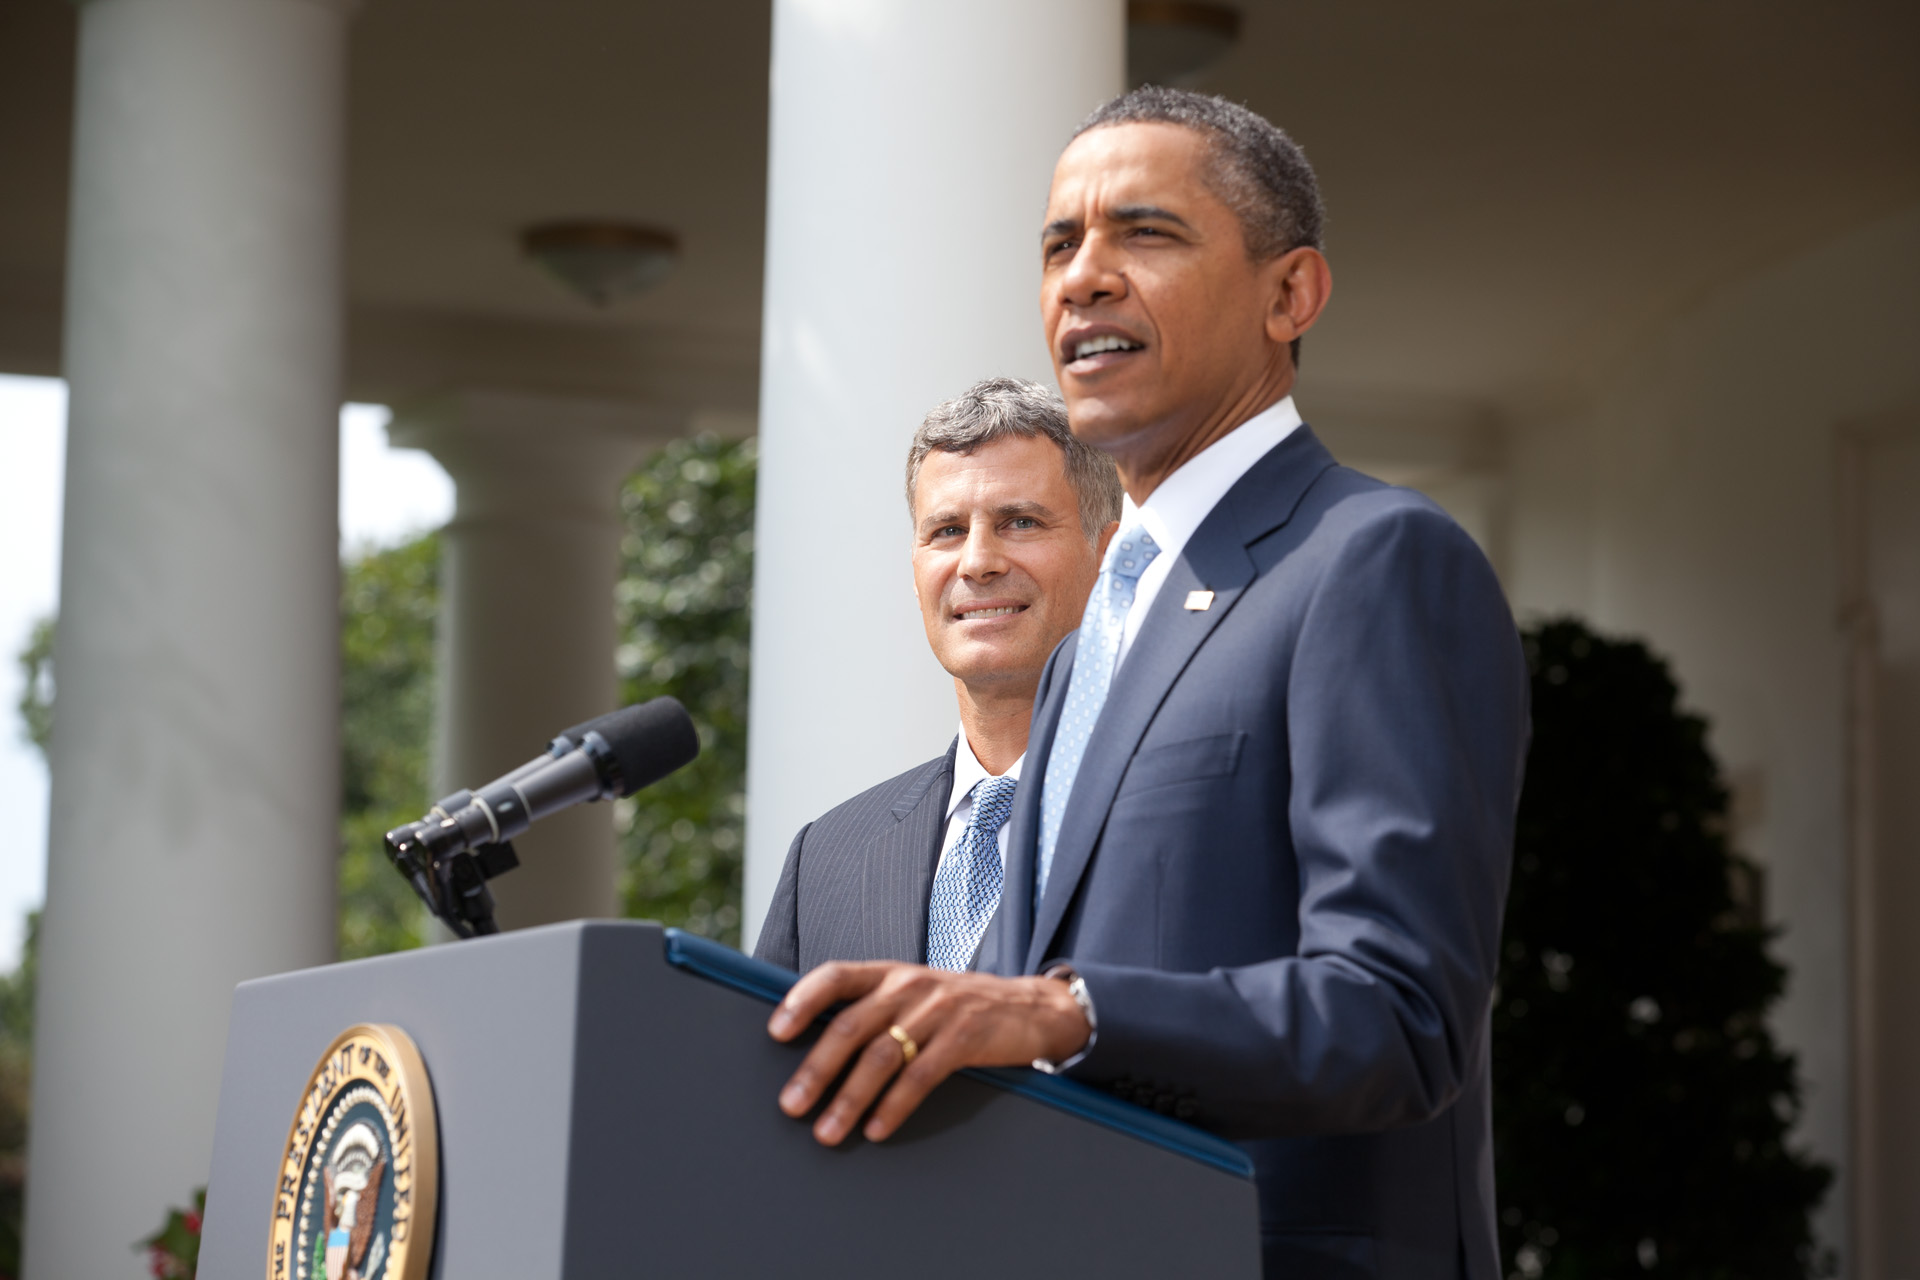 President Obama announces Alan Krueger to lead the Council of Economic Advisers